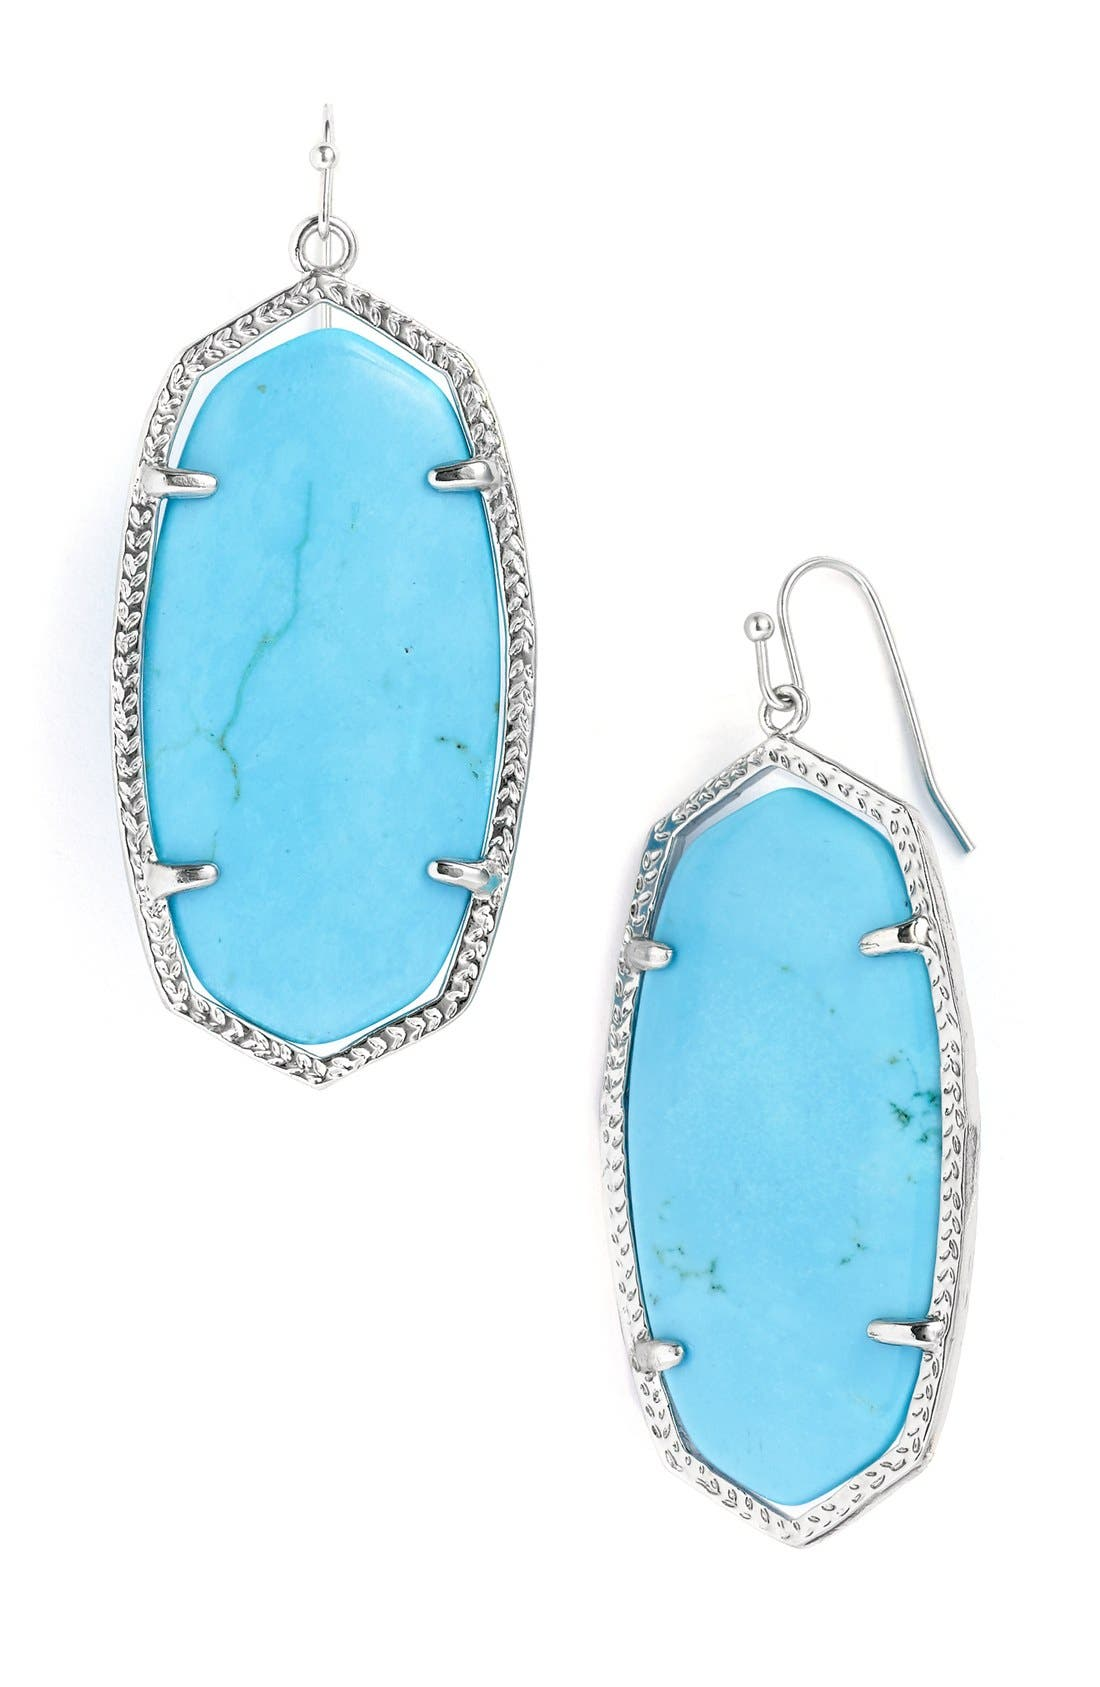 Alternate Image 1 Selected - Kendra Scott 'Danielle' Oval Statement Earrings